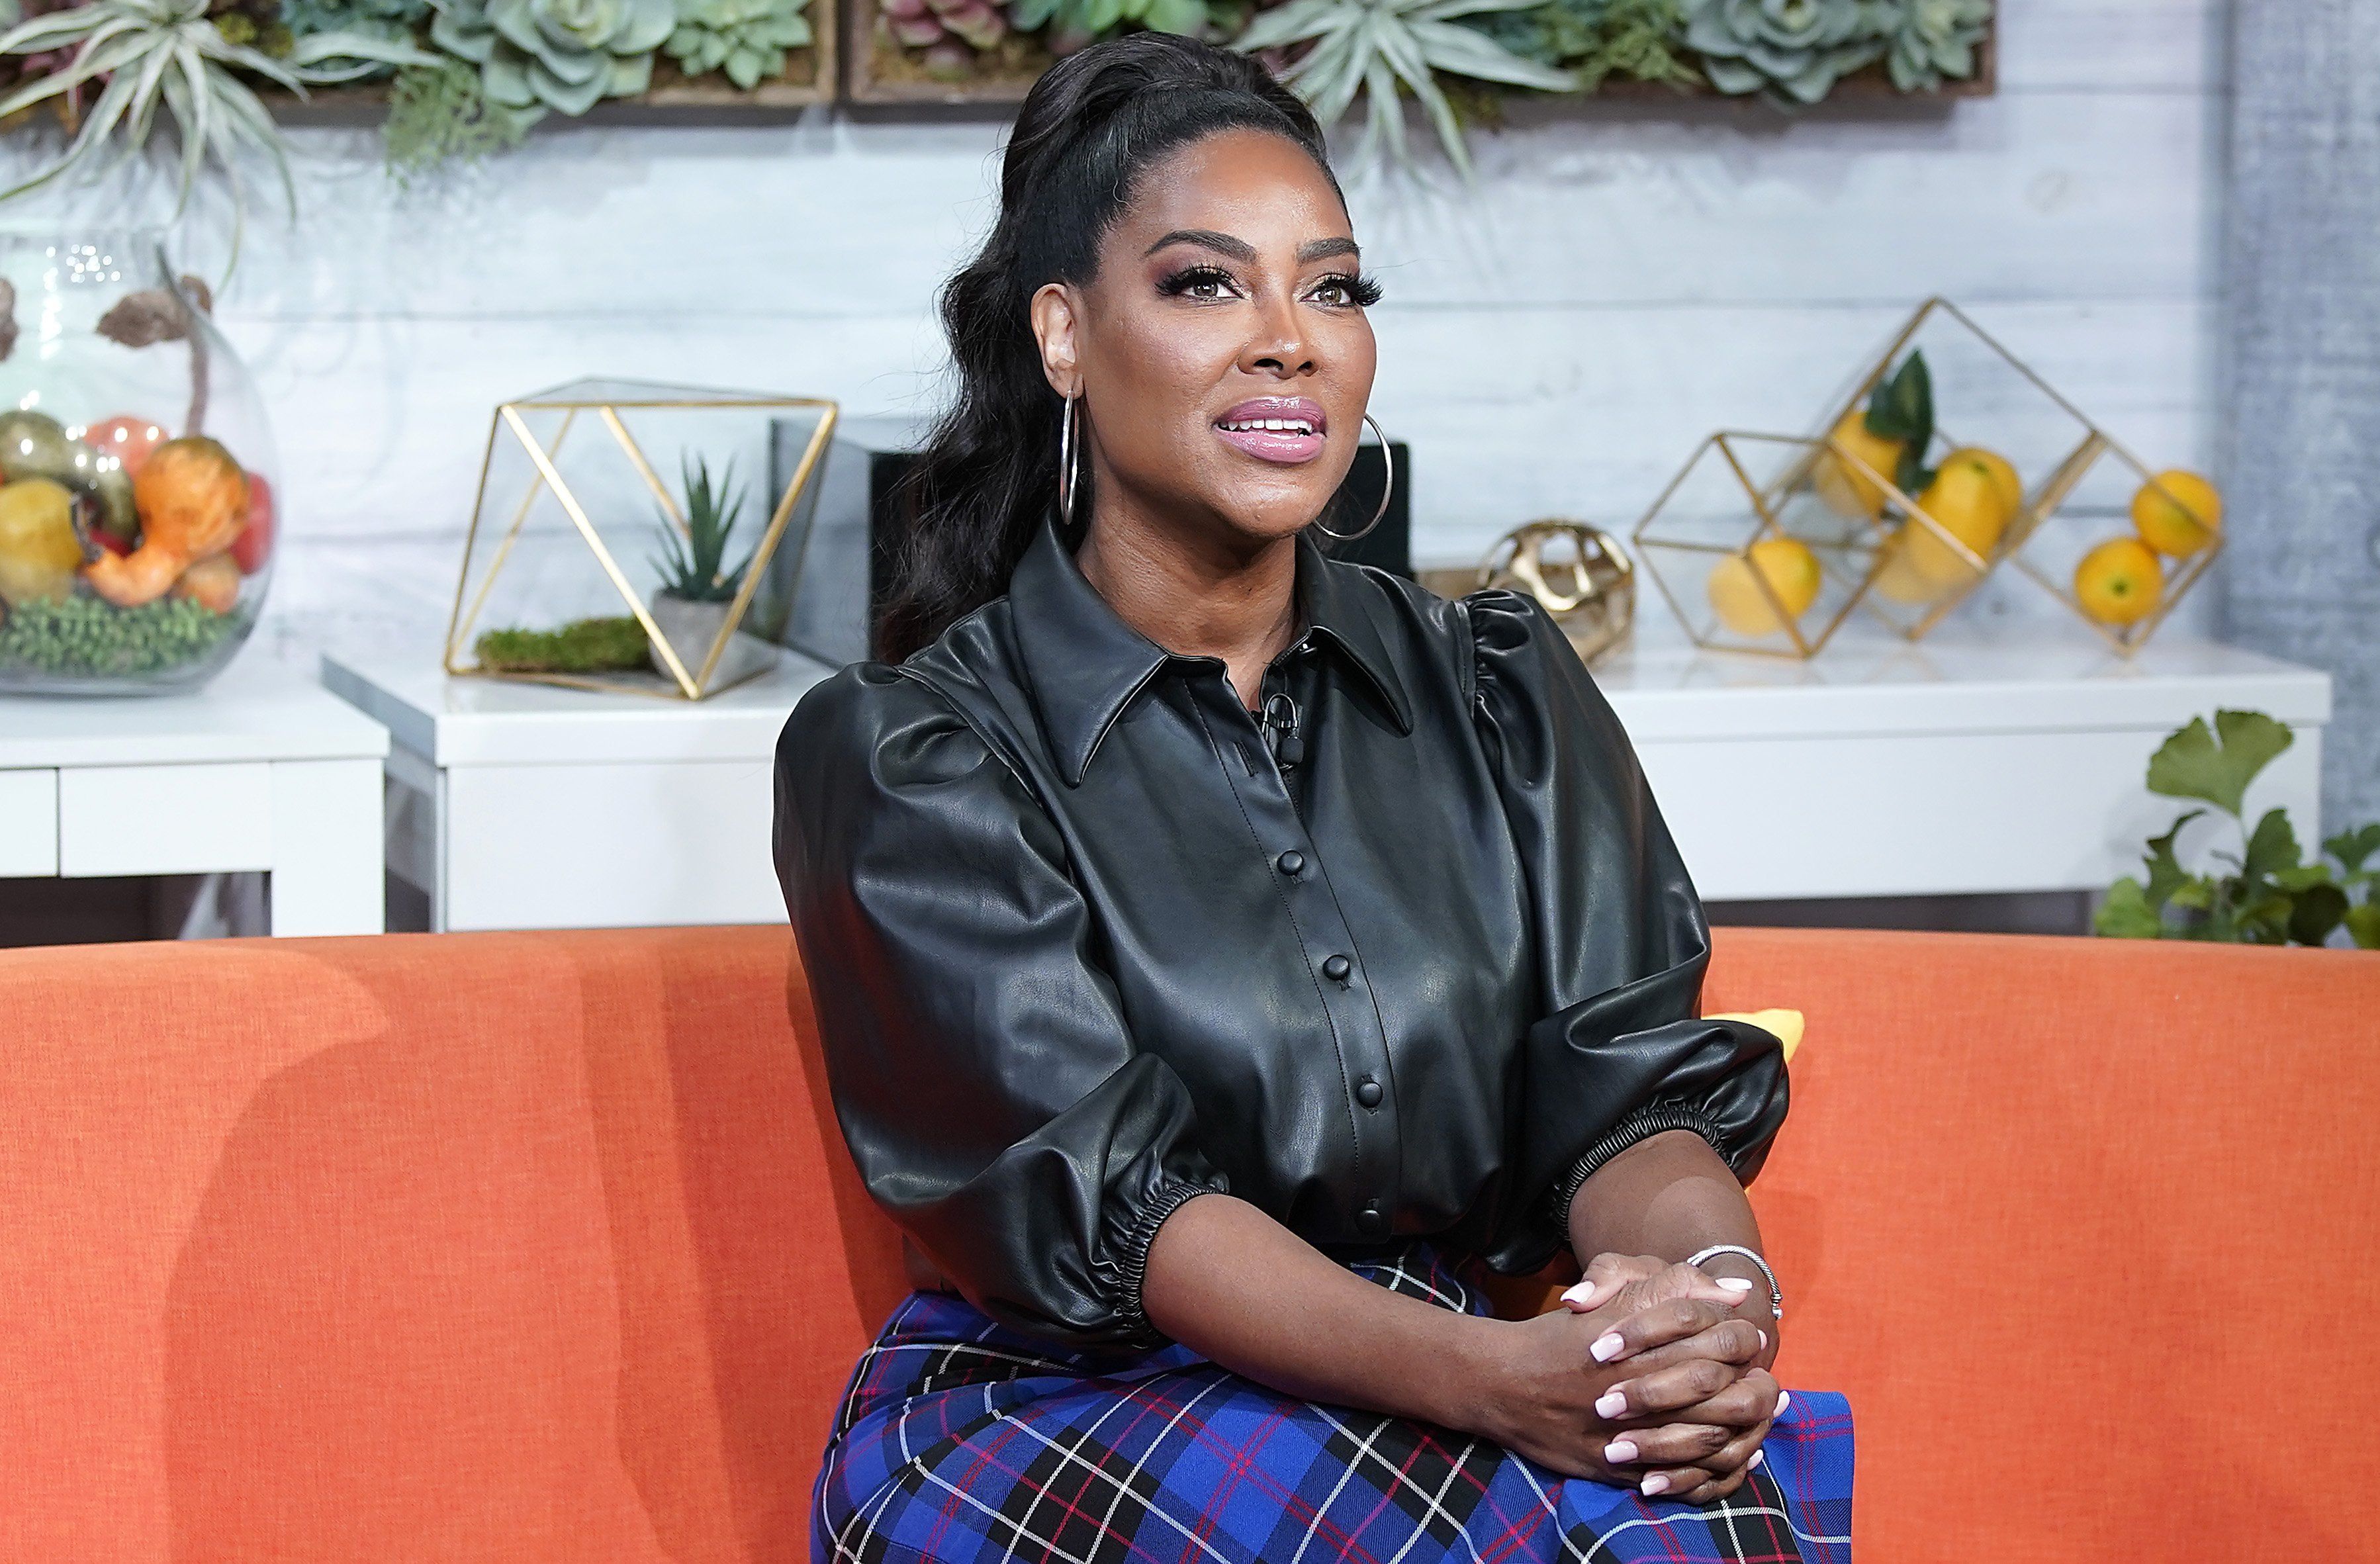 Kenya Moore during her visit to BuzzFeed on November 4, 2019 in New York . | Photo: Getty Images